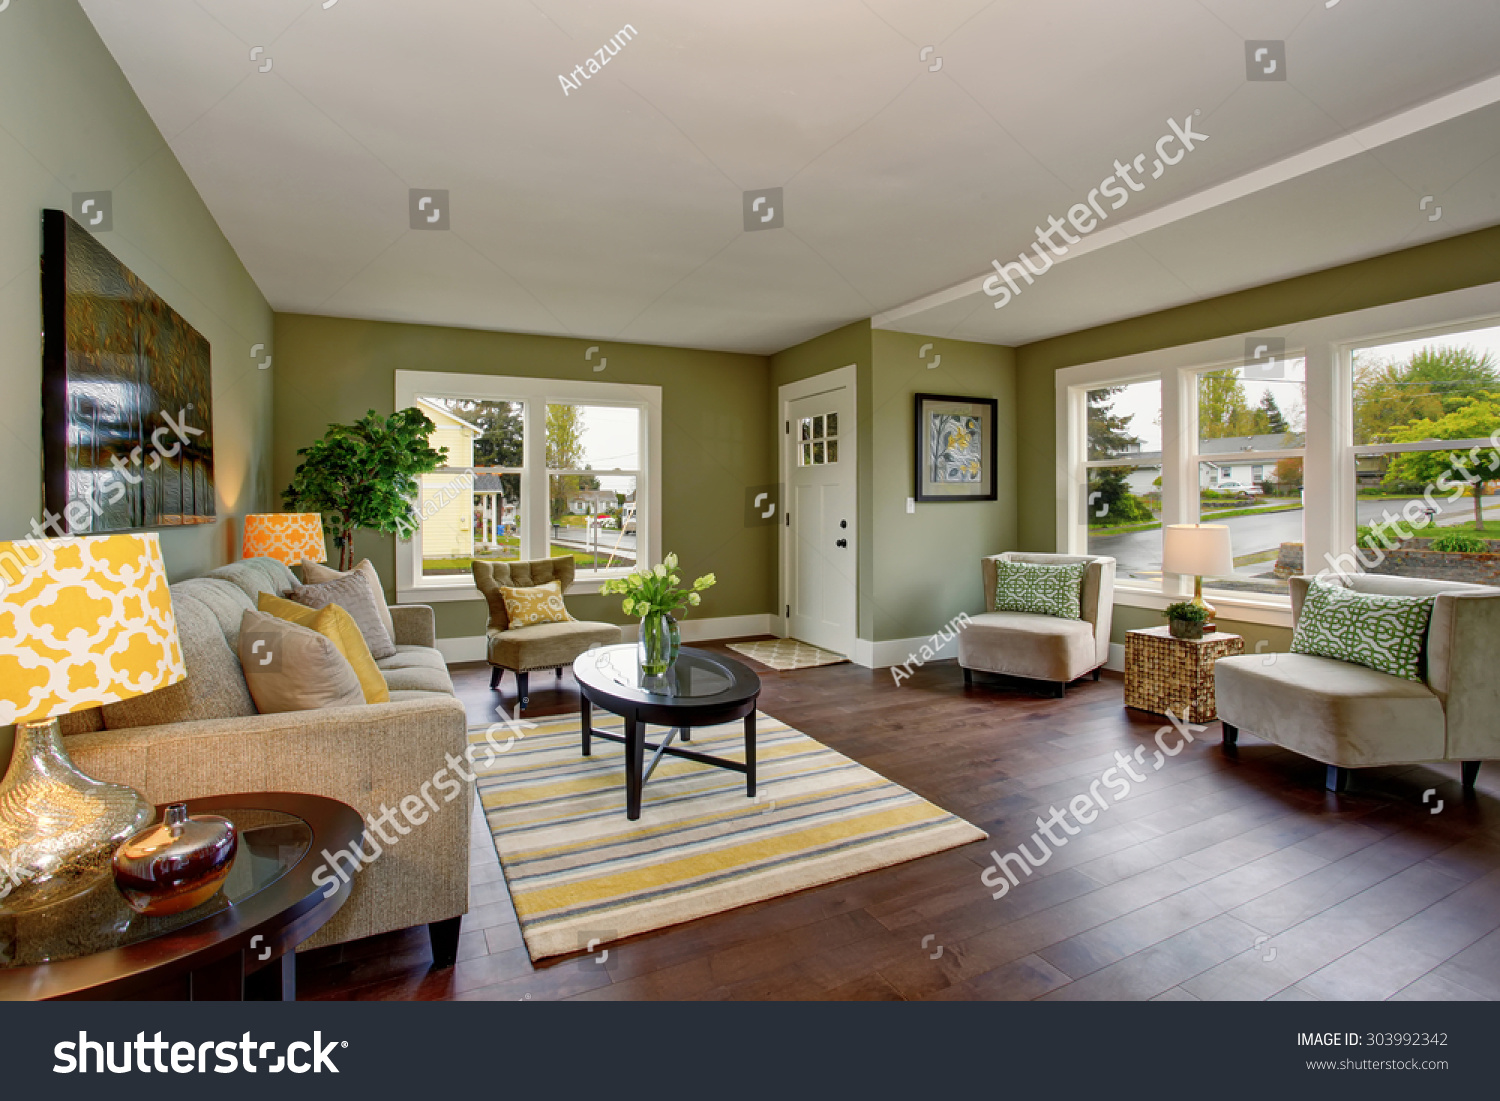 Well Decorated Living Room With Hardwood Floor And Green